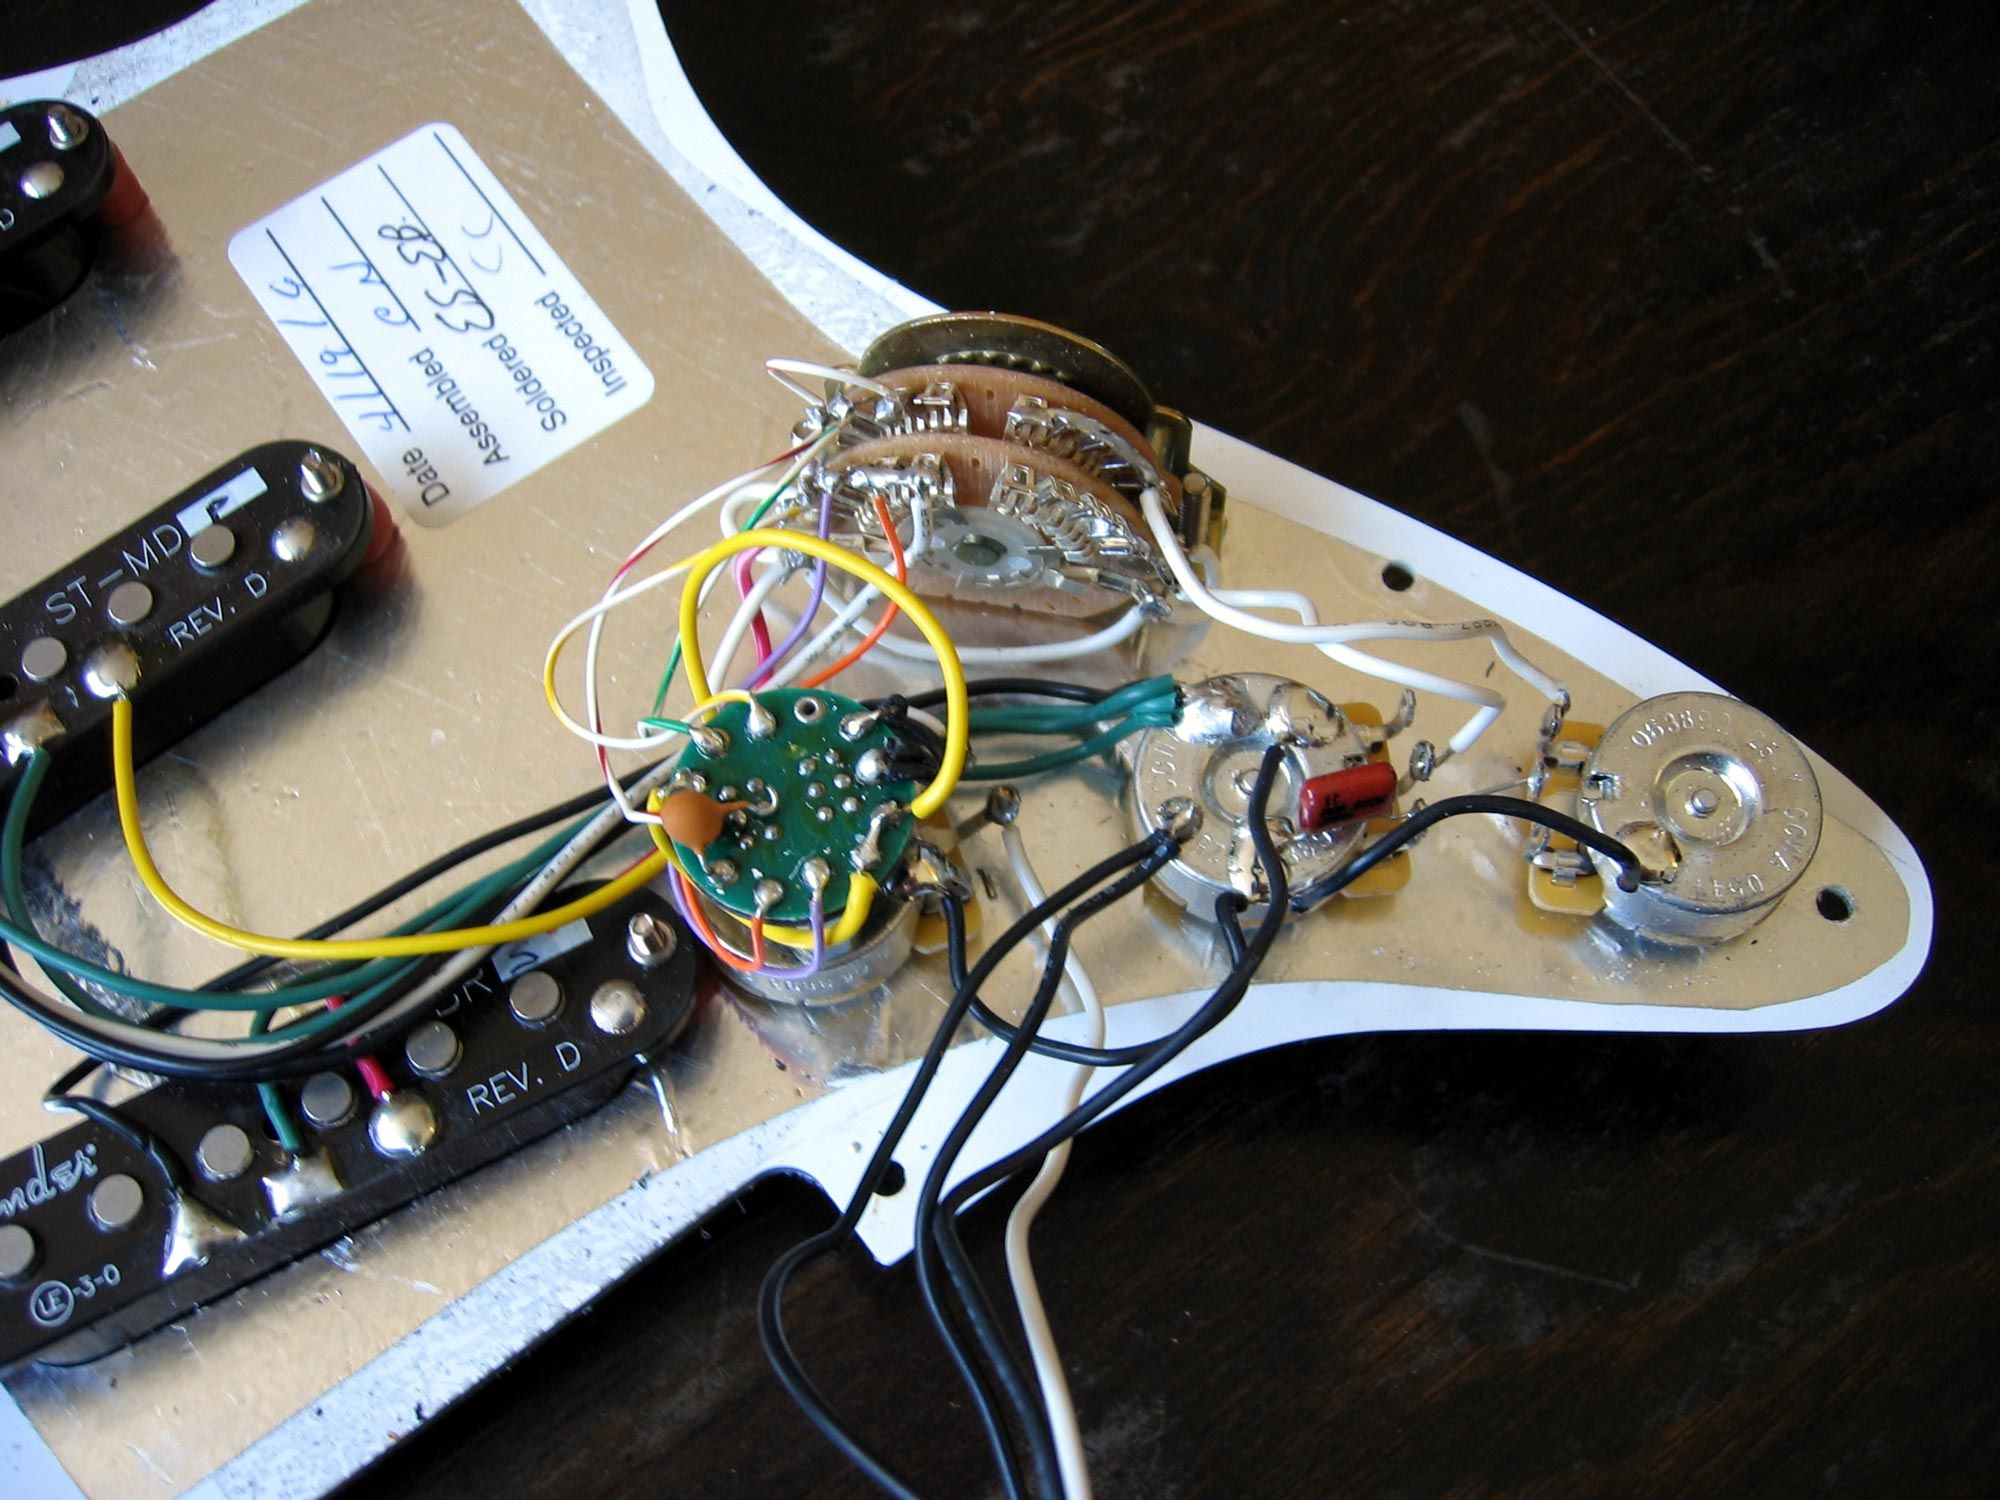 fender deluxe stratocaster w s 1 switch wiring diagram guitarfender deluxe stratocaster w s 1 switch wiring diagram